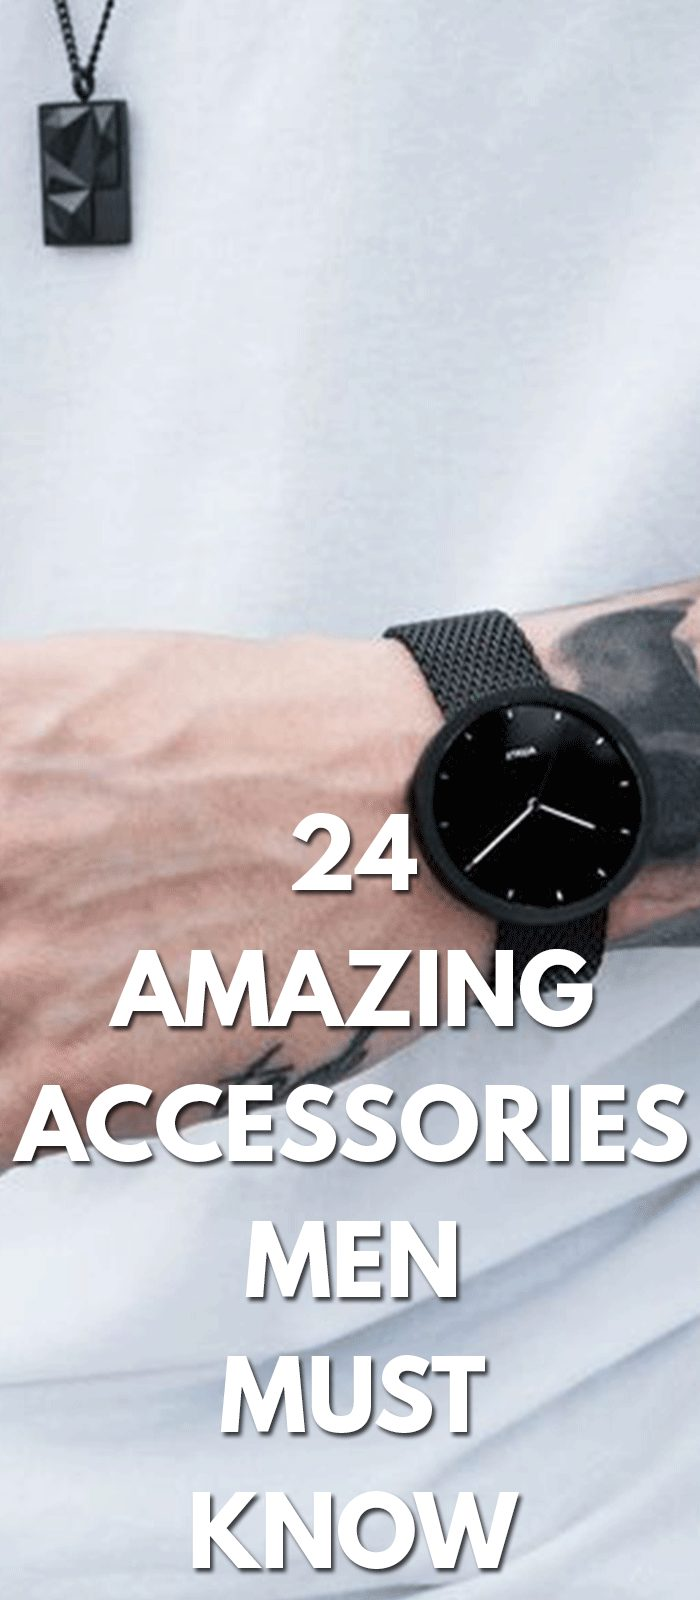 24 Amazing Accessories Men Must Know